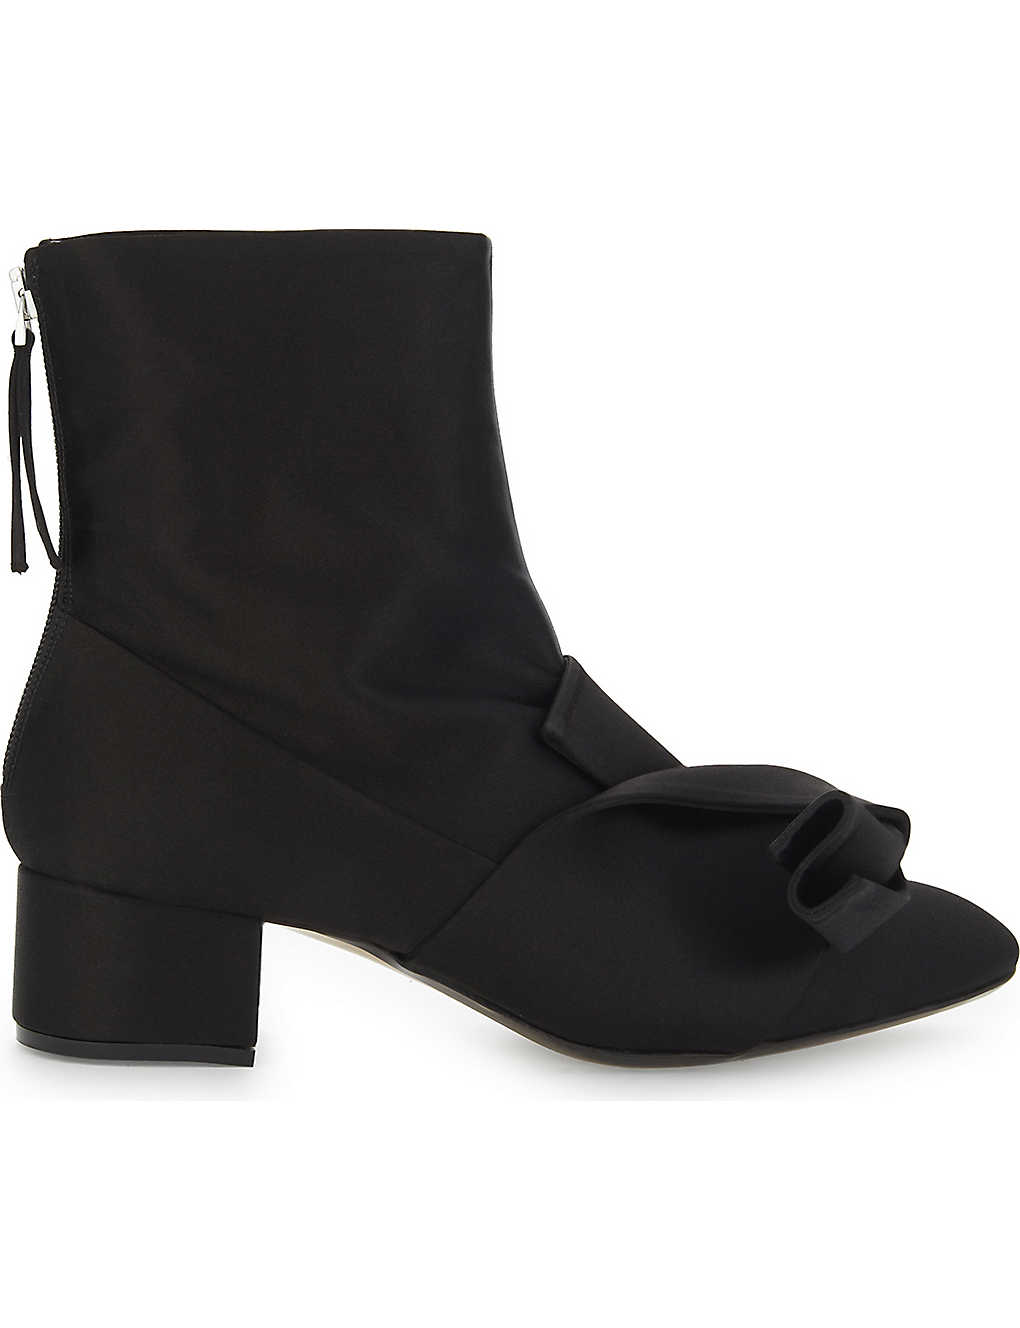 Footaction Sale Online With Paypal Cheap Online No21 Satin ankle boots View For Sale For Sale OXR54naCQj